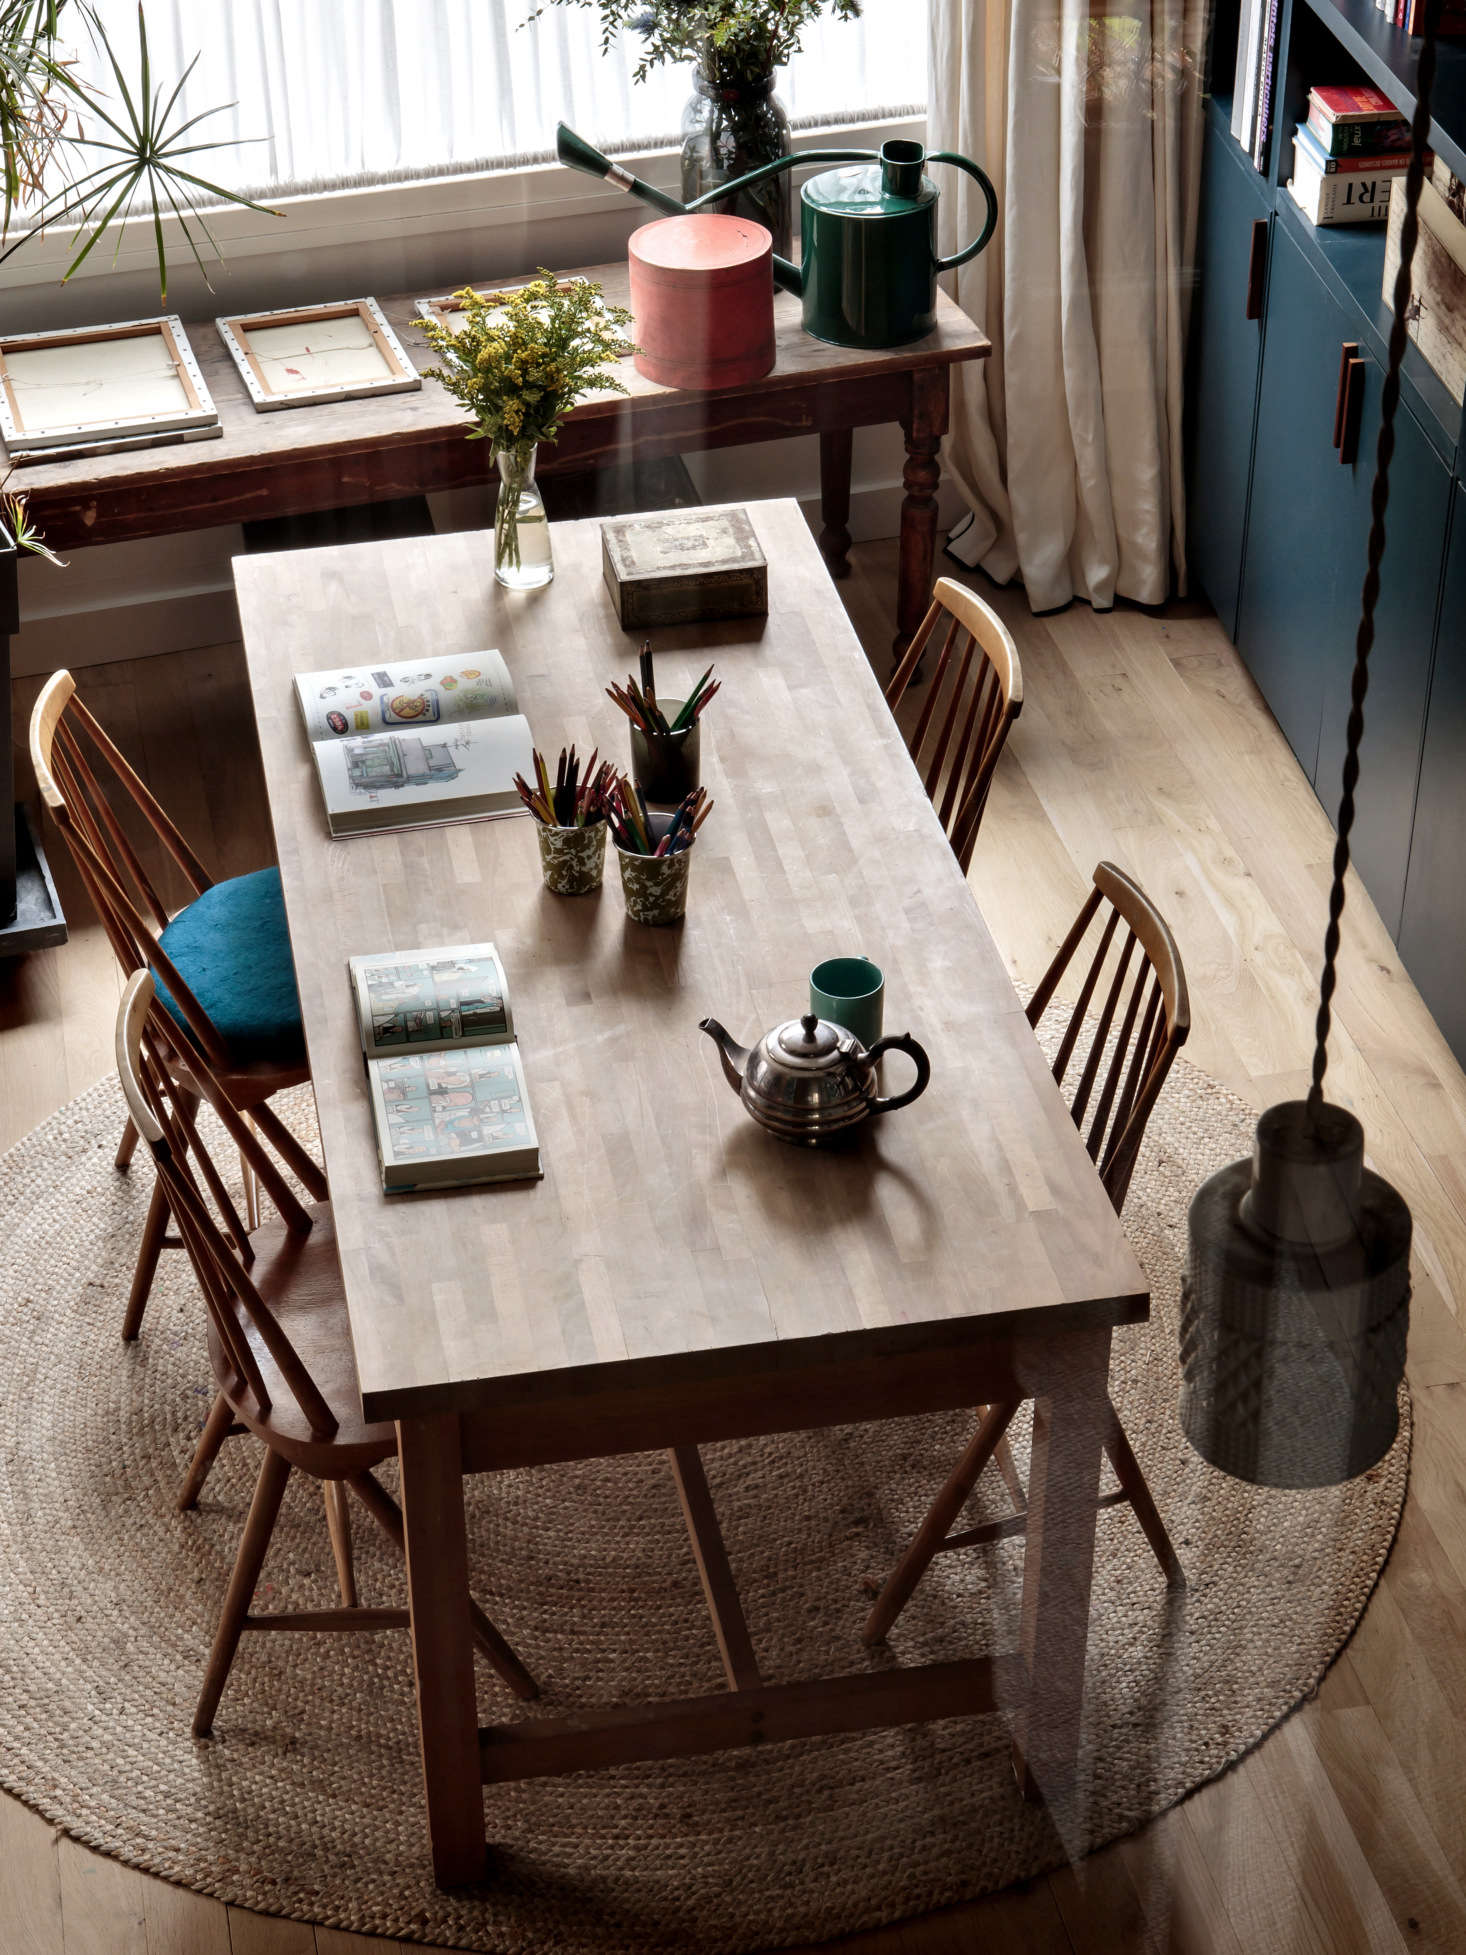 The table is an old Habitat design paired with chairs from Selency, a European digital marketplace specializing in vintage Scandinavian furniture. The Fancy Tall Pendant Lights are from Kathleen Hills&#8